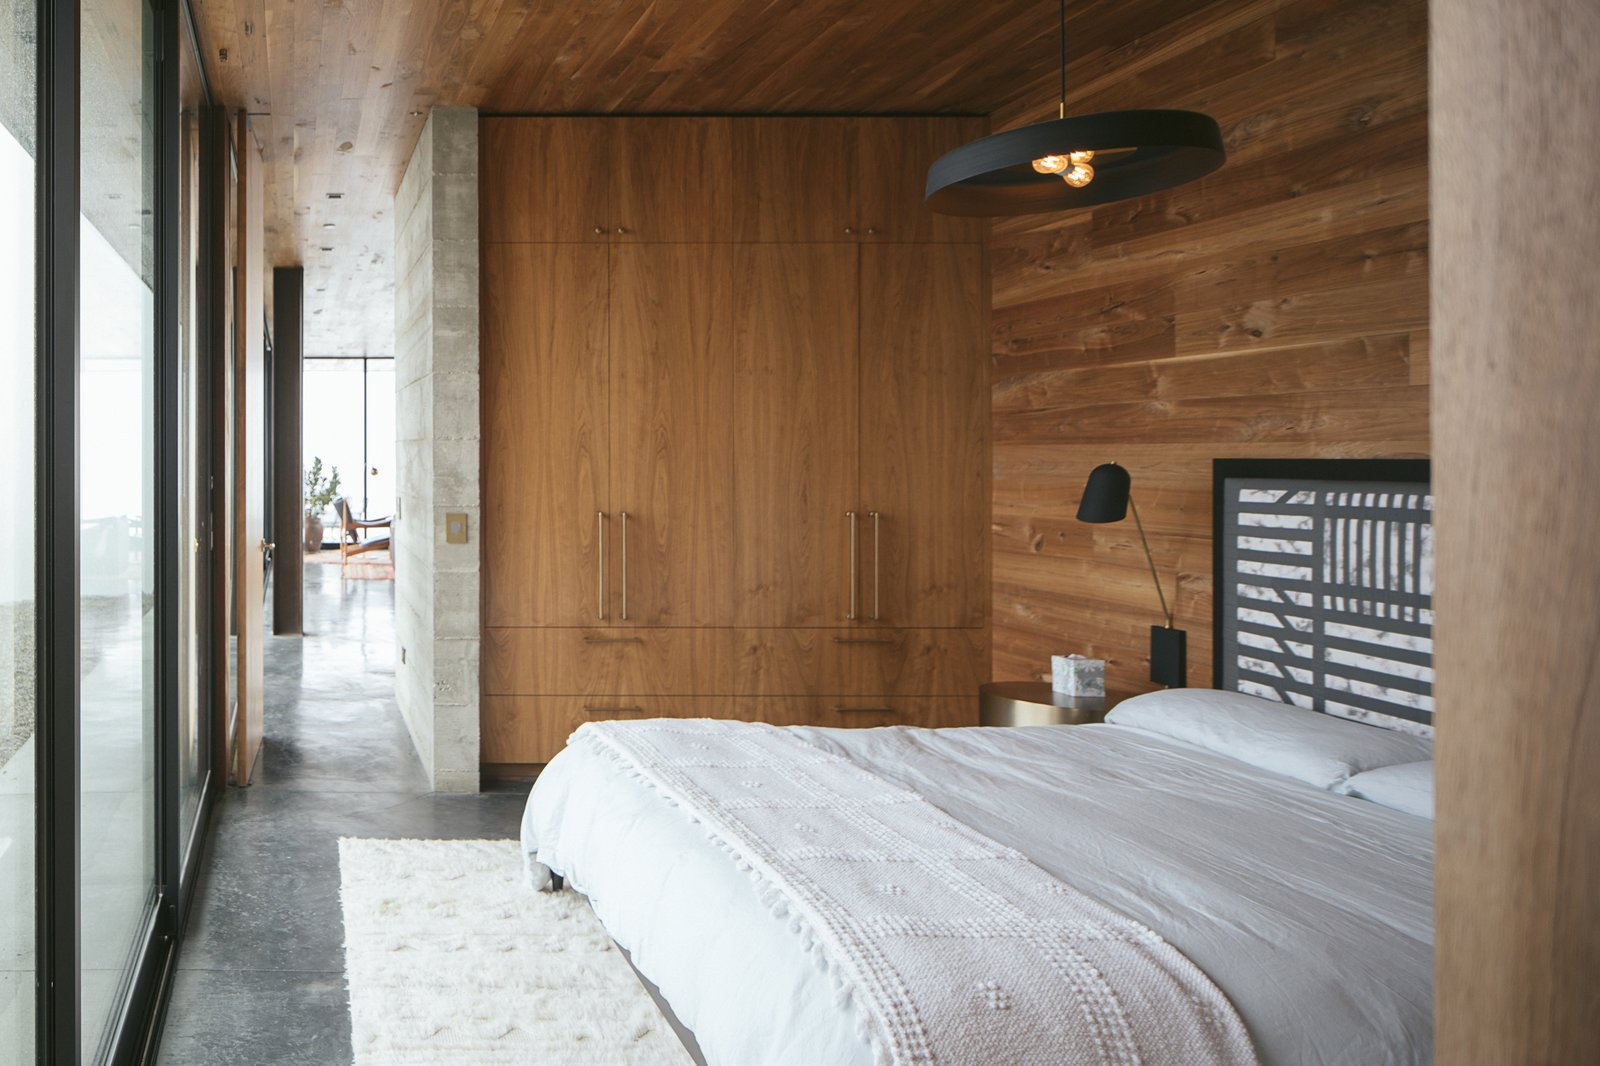 Bedroom with wood wall finish and large black hanging ceiling pendant light